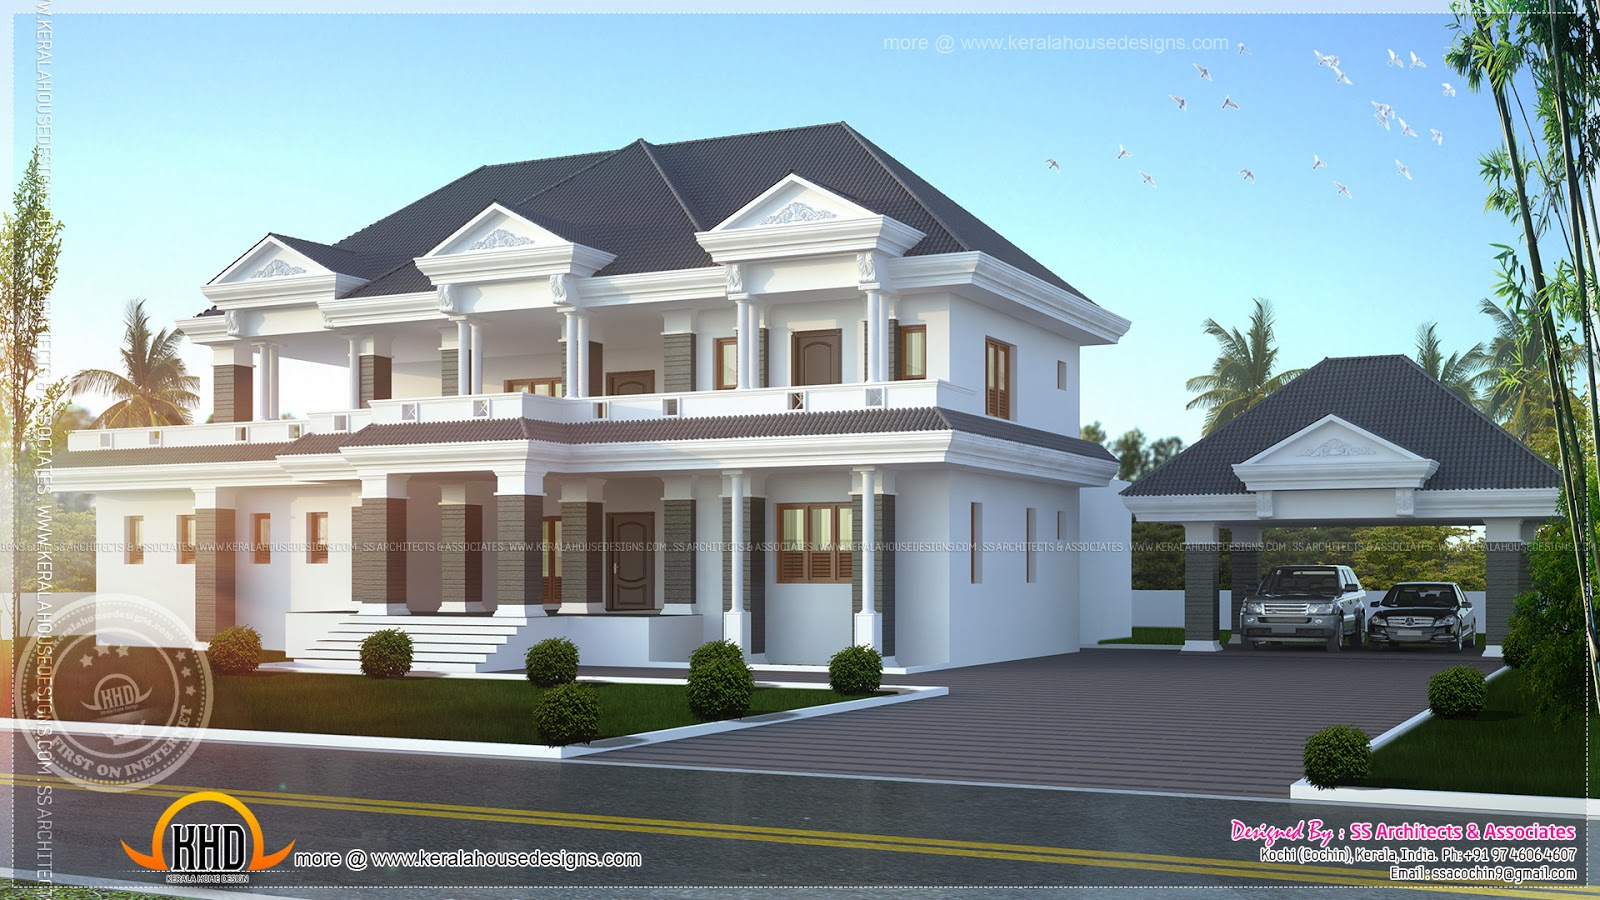 Modern super luxury home design kerala home design and for Super modern house design